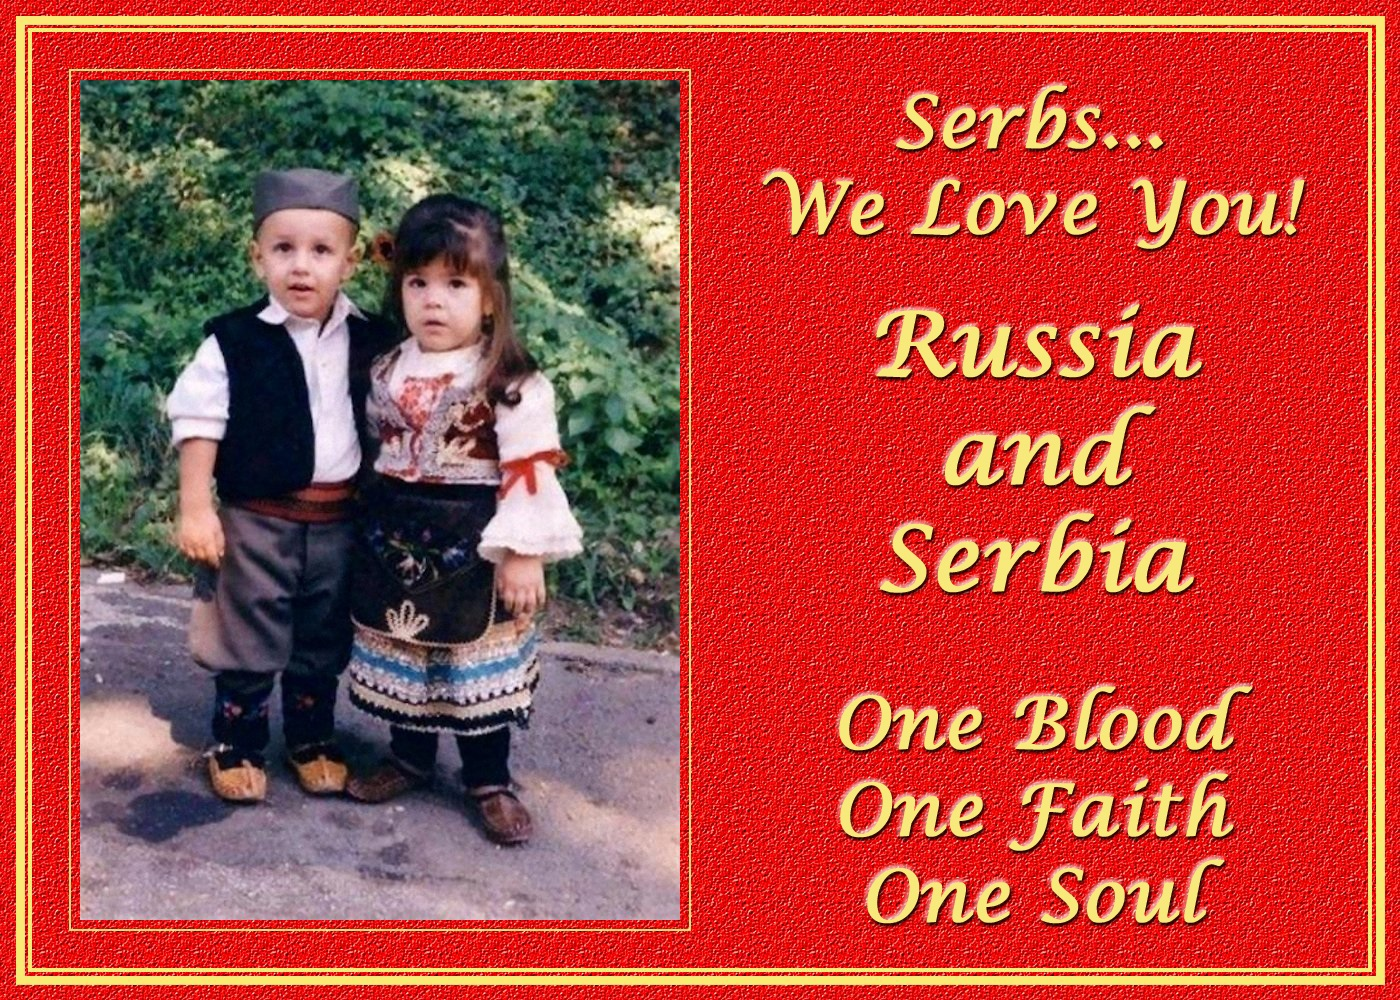 00 serbs we love you 141115